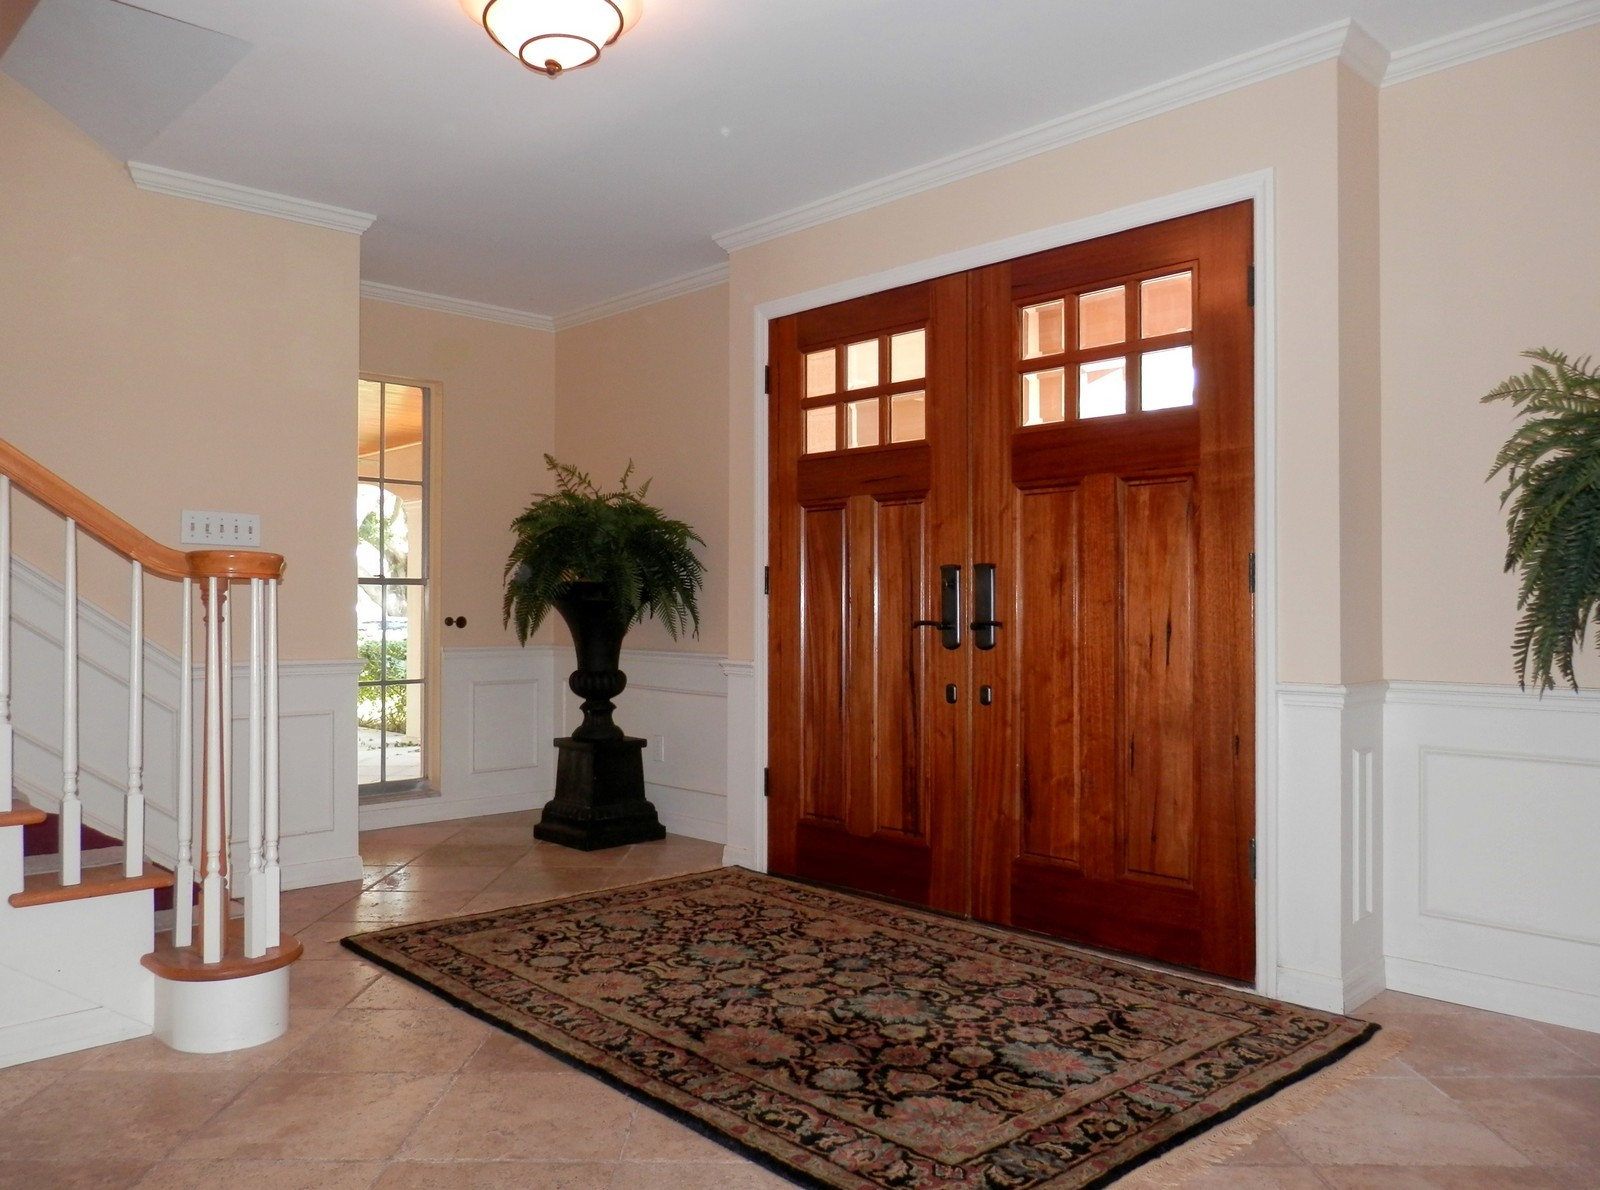 Real Estate Photography - 4920 Lyford Cay Road, Tampa, FL, 33629 - Foyer